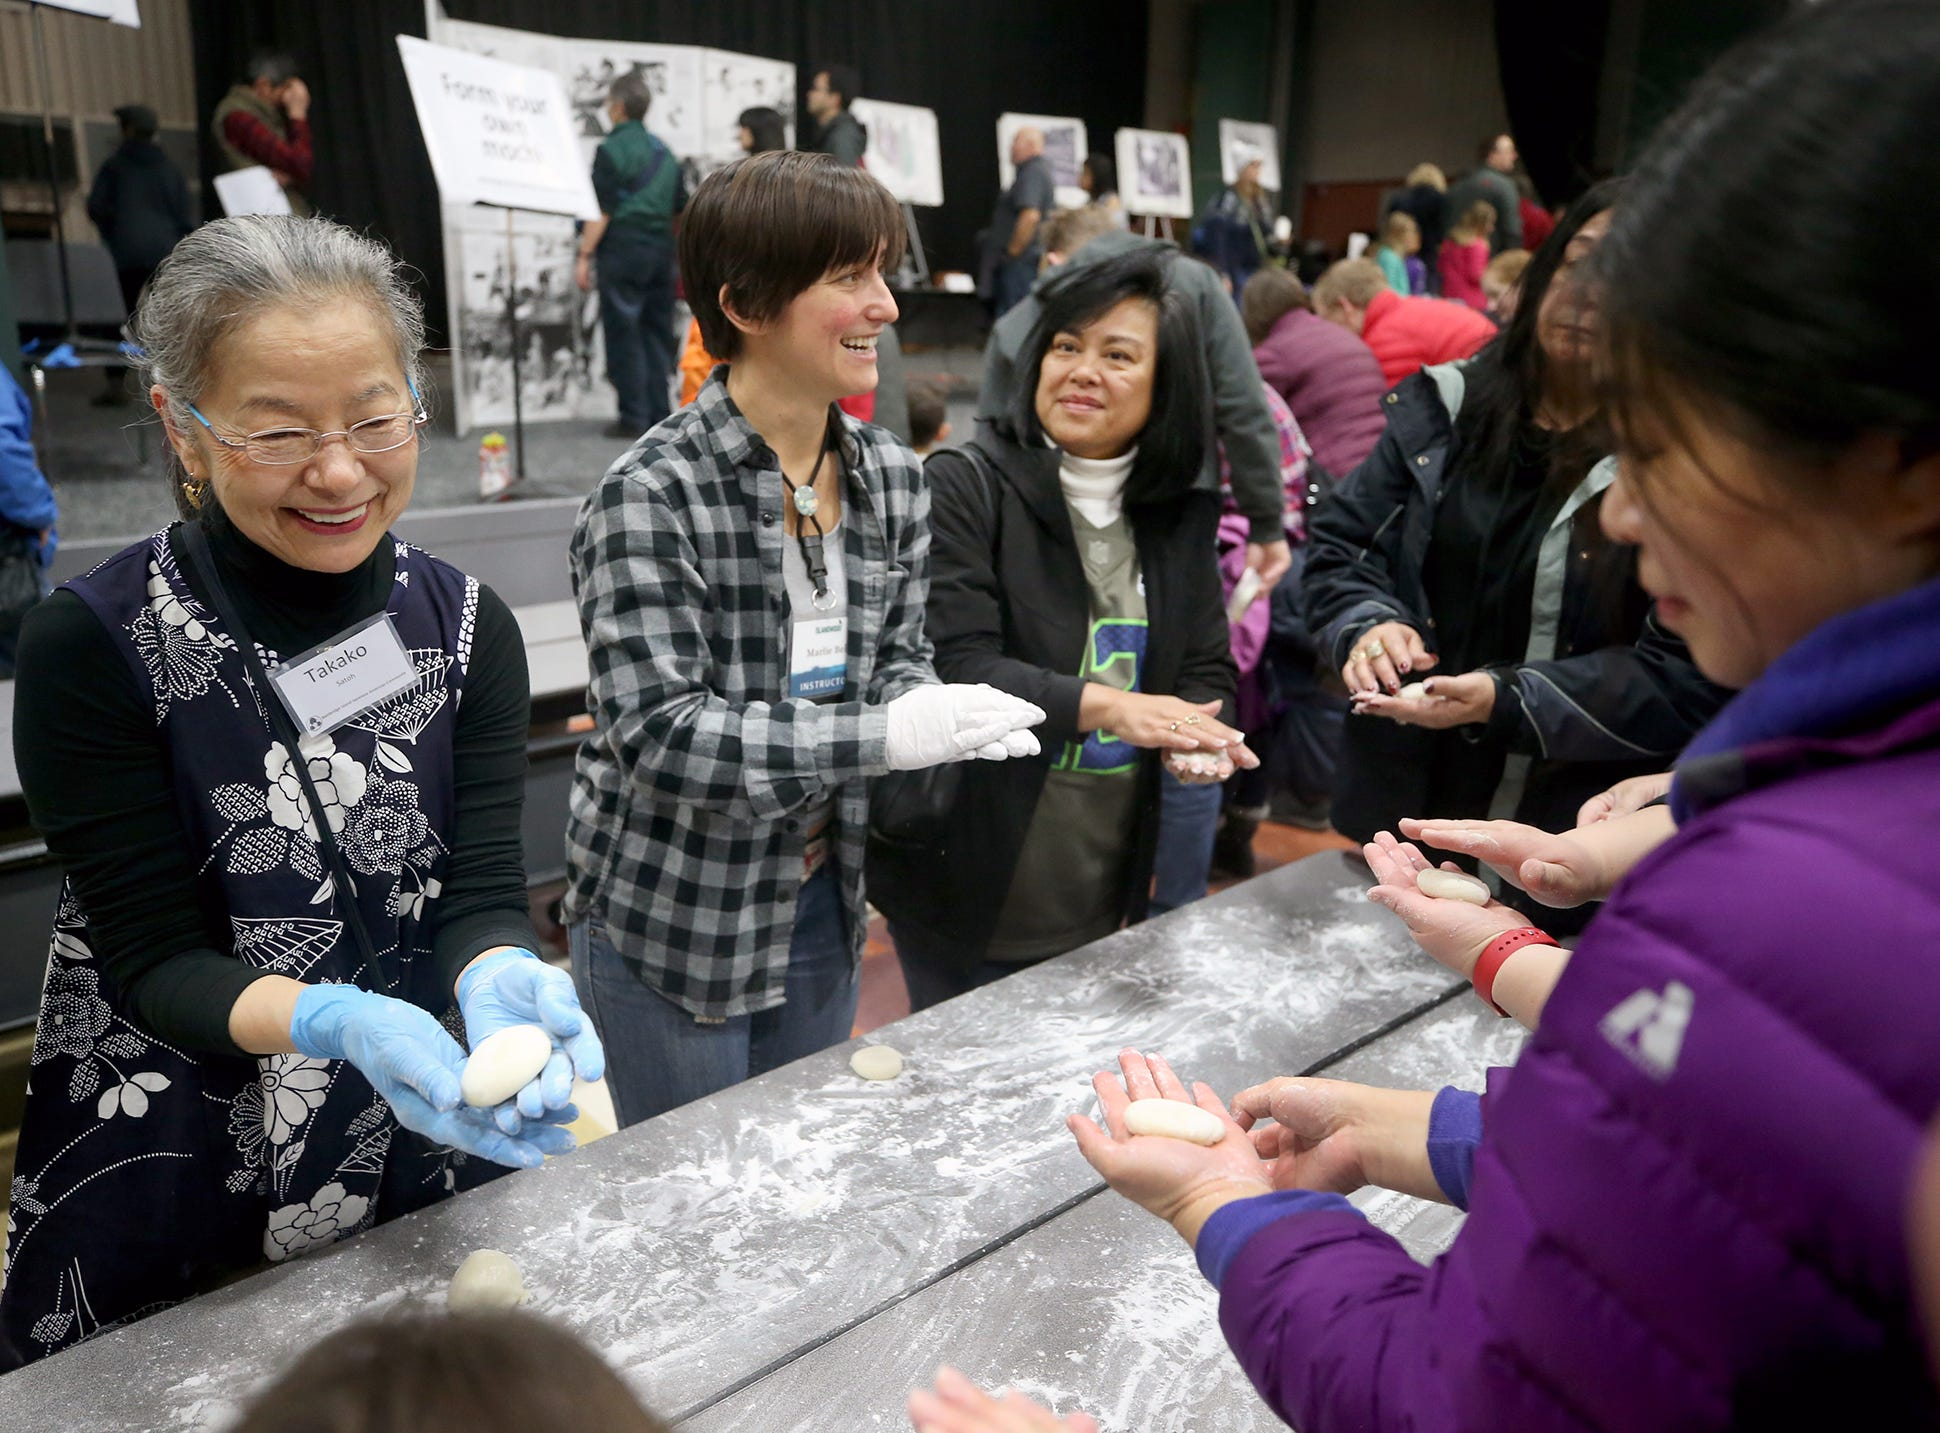 The 30th anniversary of Bainbridge Island's Japanese-American Mochi Tsuki celebration was held at an new location at the Woodward Middle School on Saturday, January, 5, 2019. Mochi Tsuki is a traditional Japanese New Year's tradition of steaming rice and pounding it into a rice cake. Takako Satoh of Bainbridge Island shows how to make a rice mochi ball to visitors.